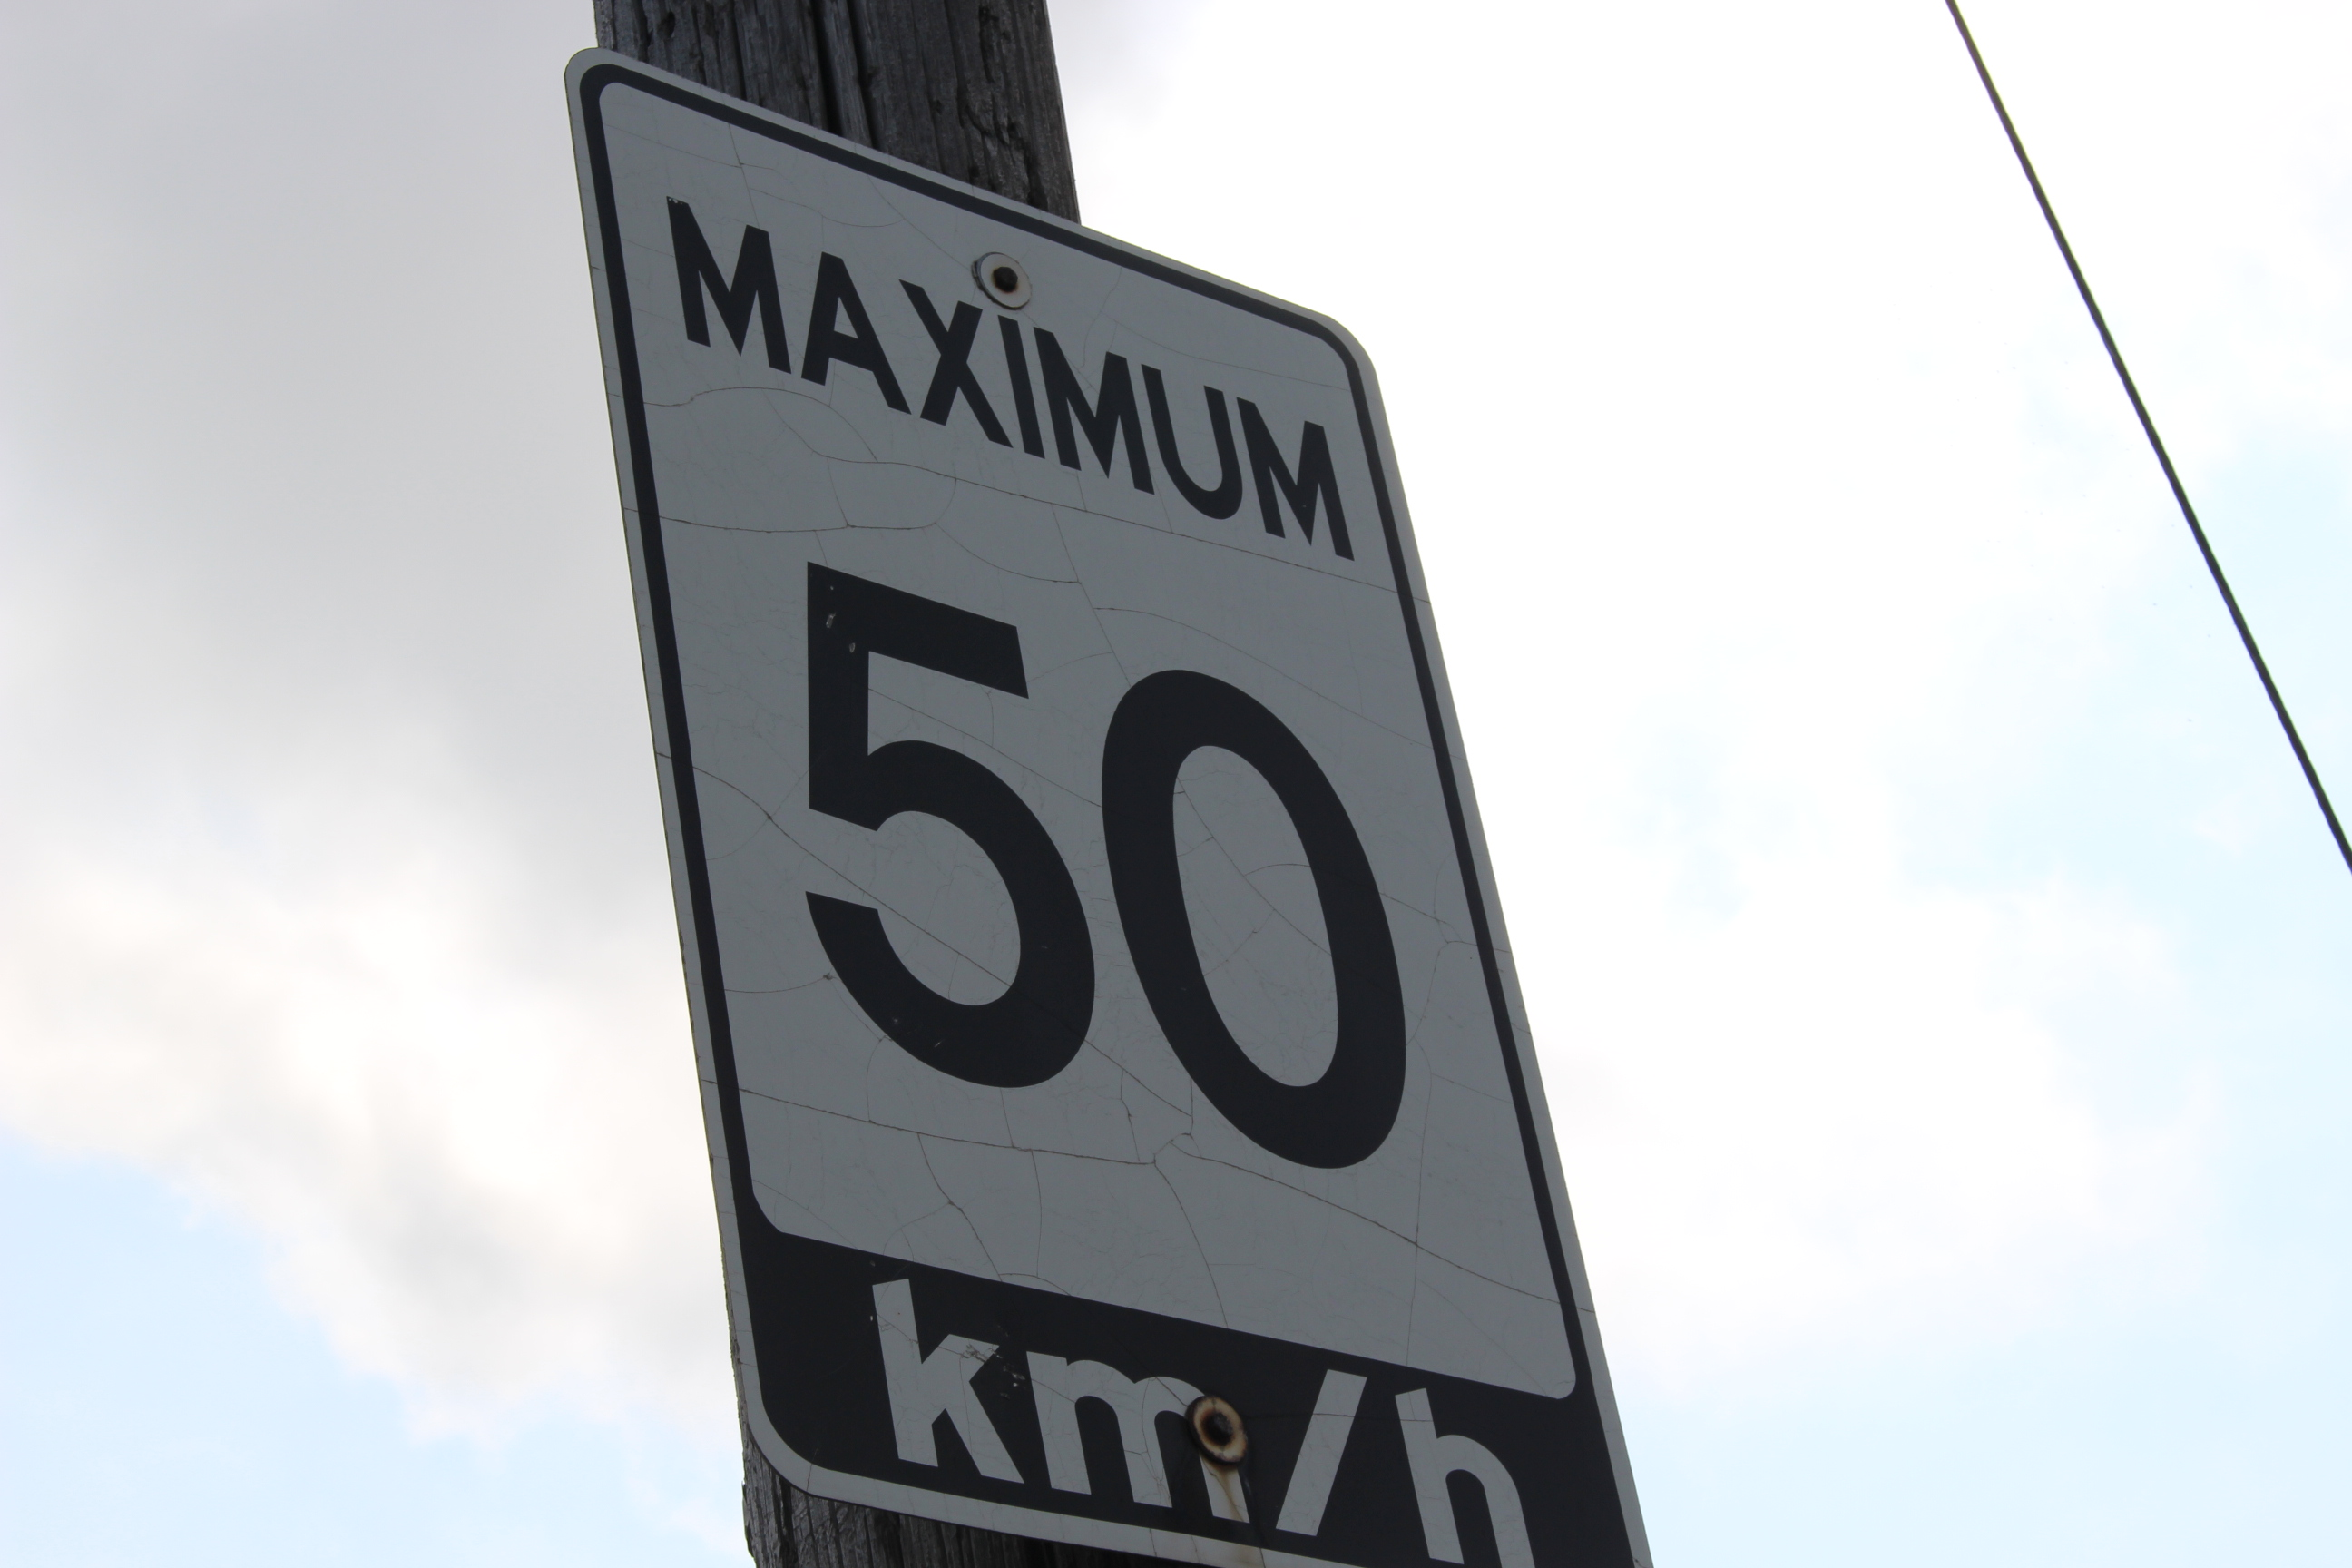 A speed limit sign. (Photo by Adelle Loiselle)